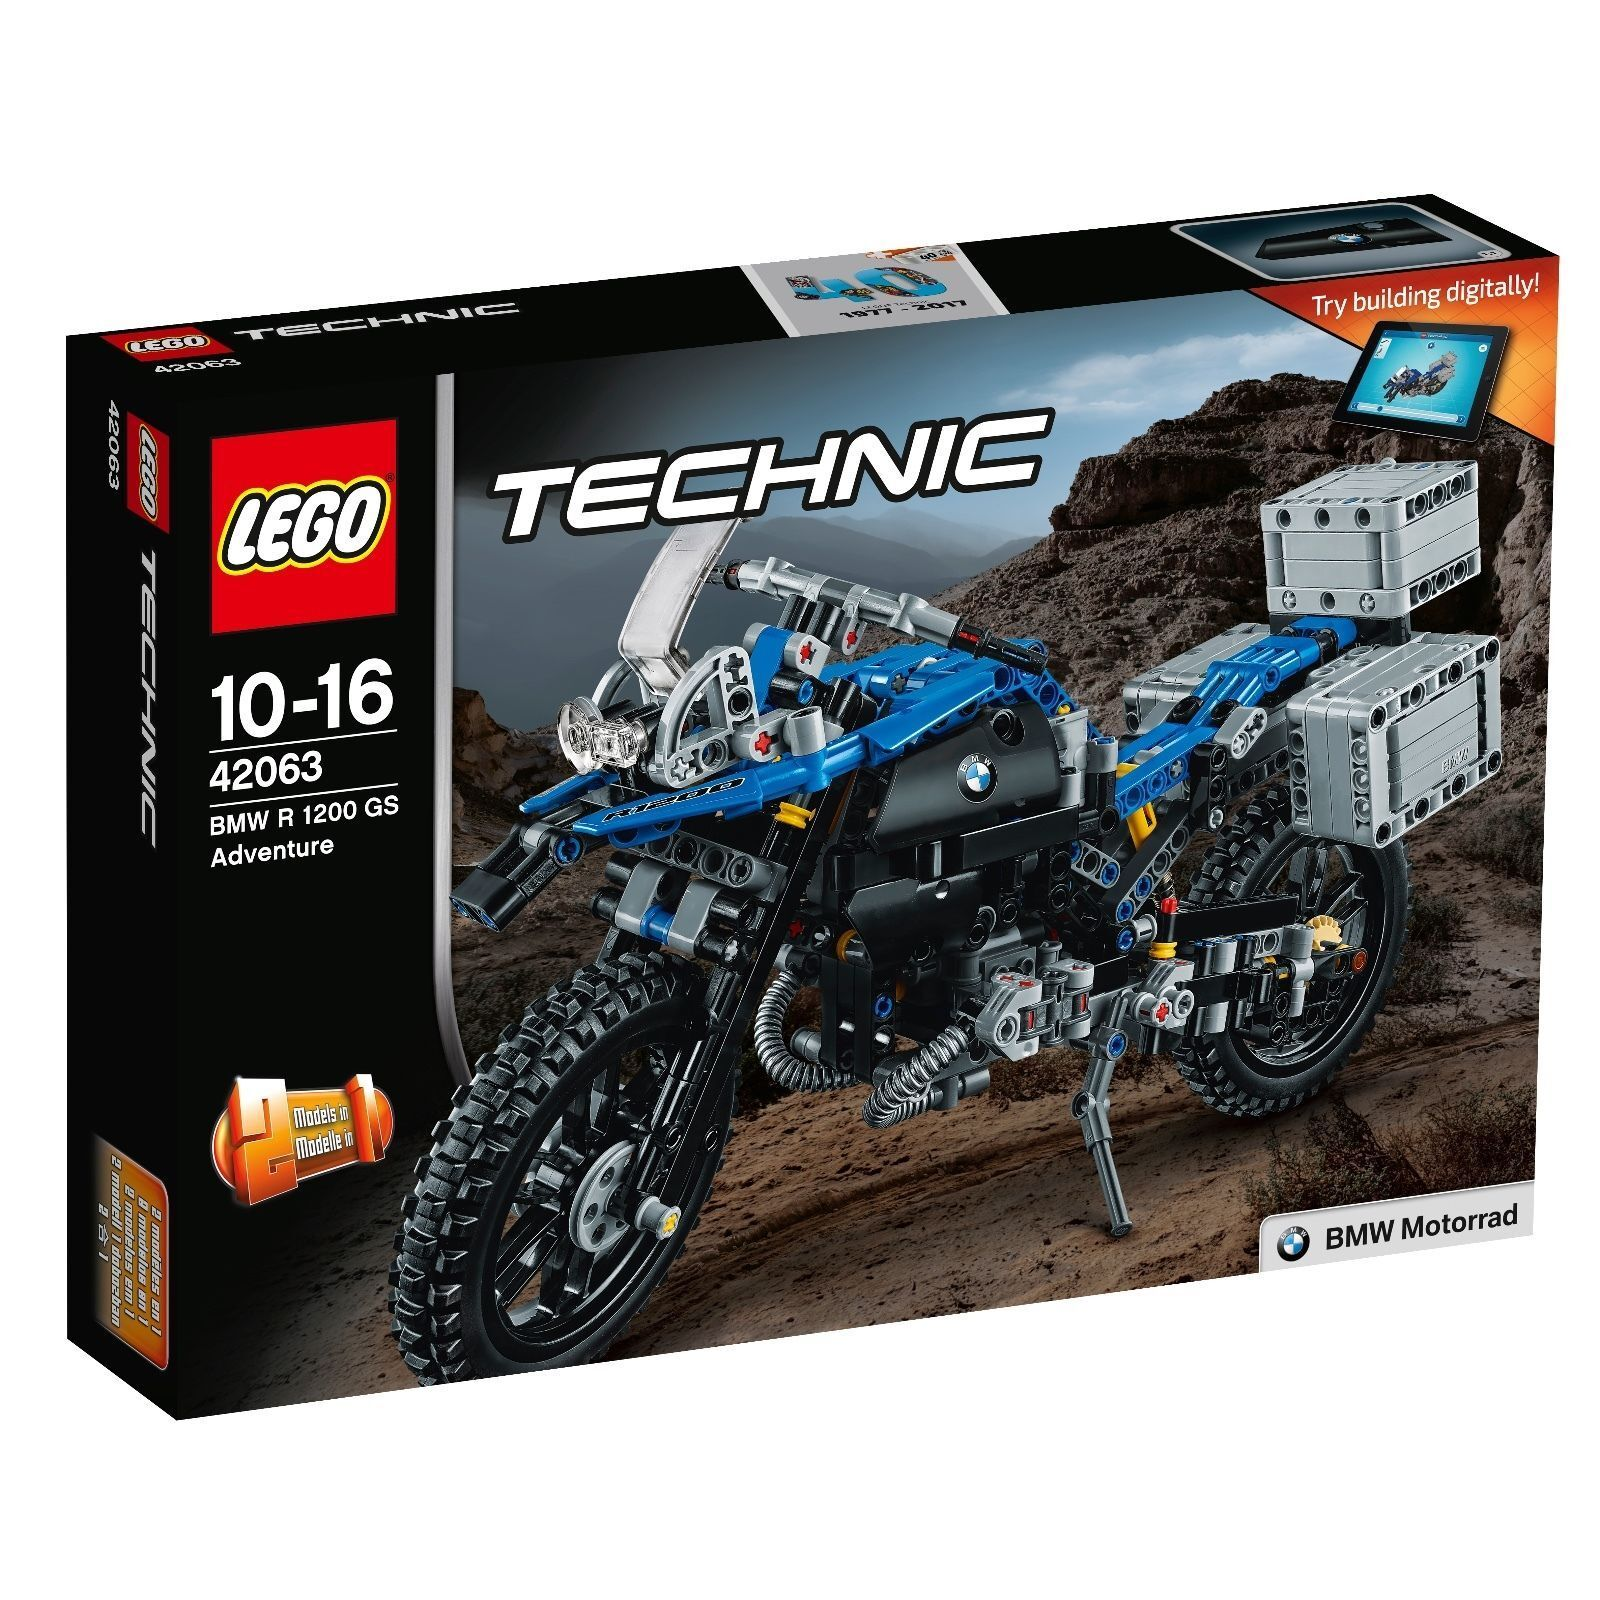 LEGO ® Technic 42063 BMW R 1200 GS Adventure Nuovo OVP NEW MISB NRFB